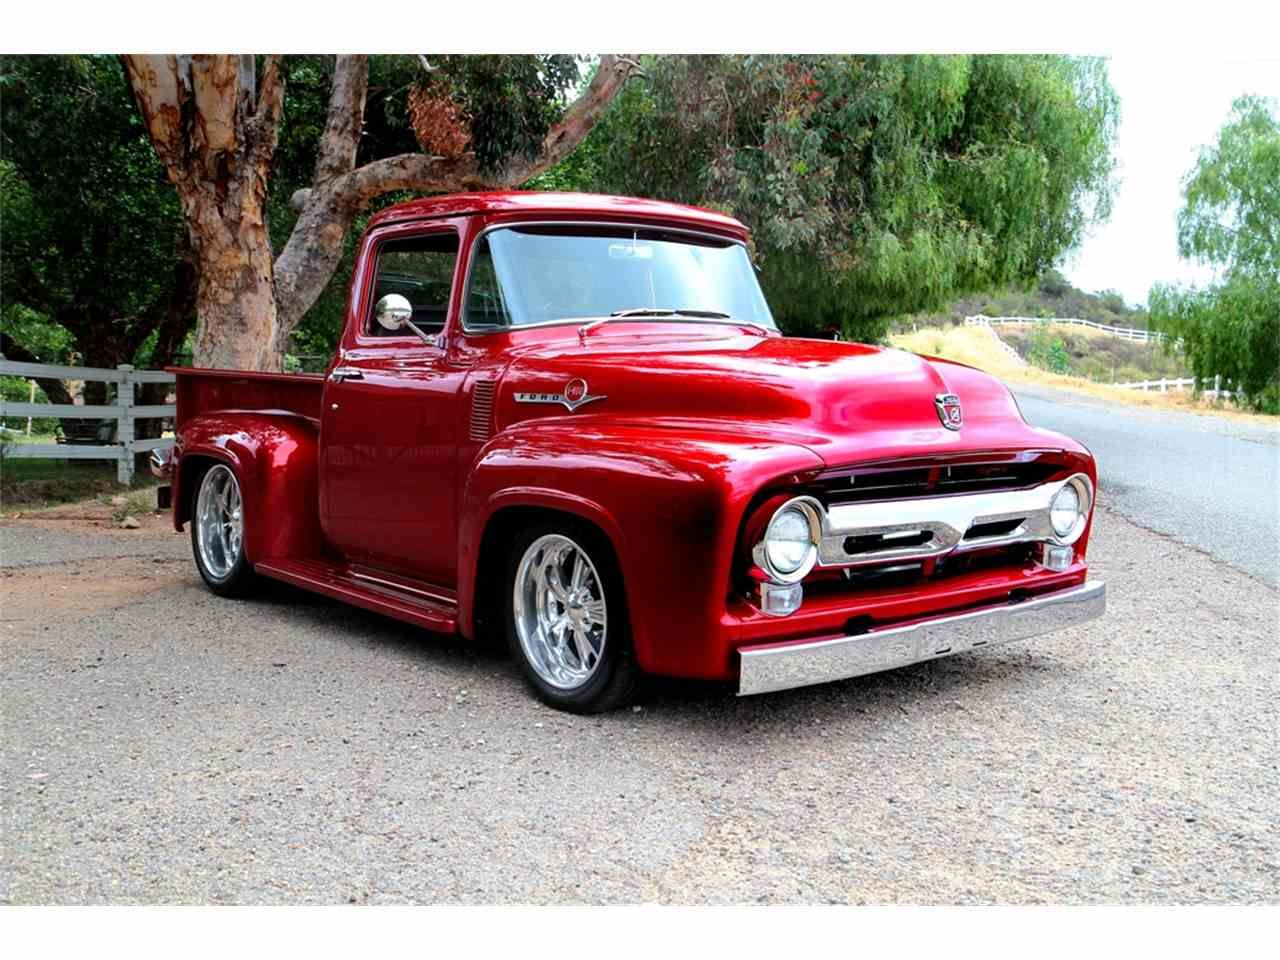 Pin by ronnie on awesome cars trucks and motorcycles | Pinterest ...